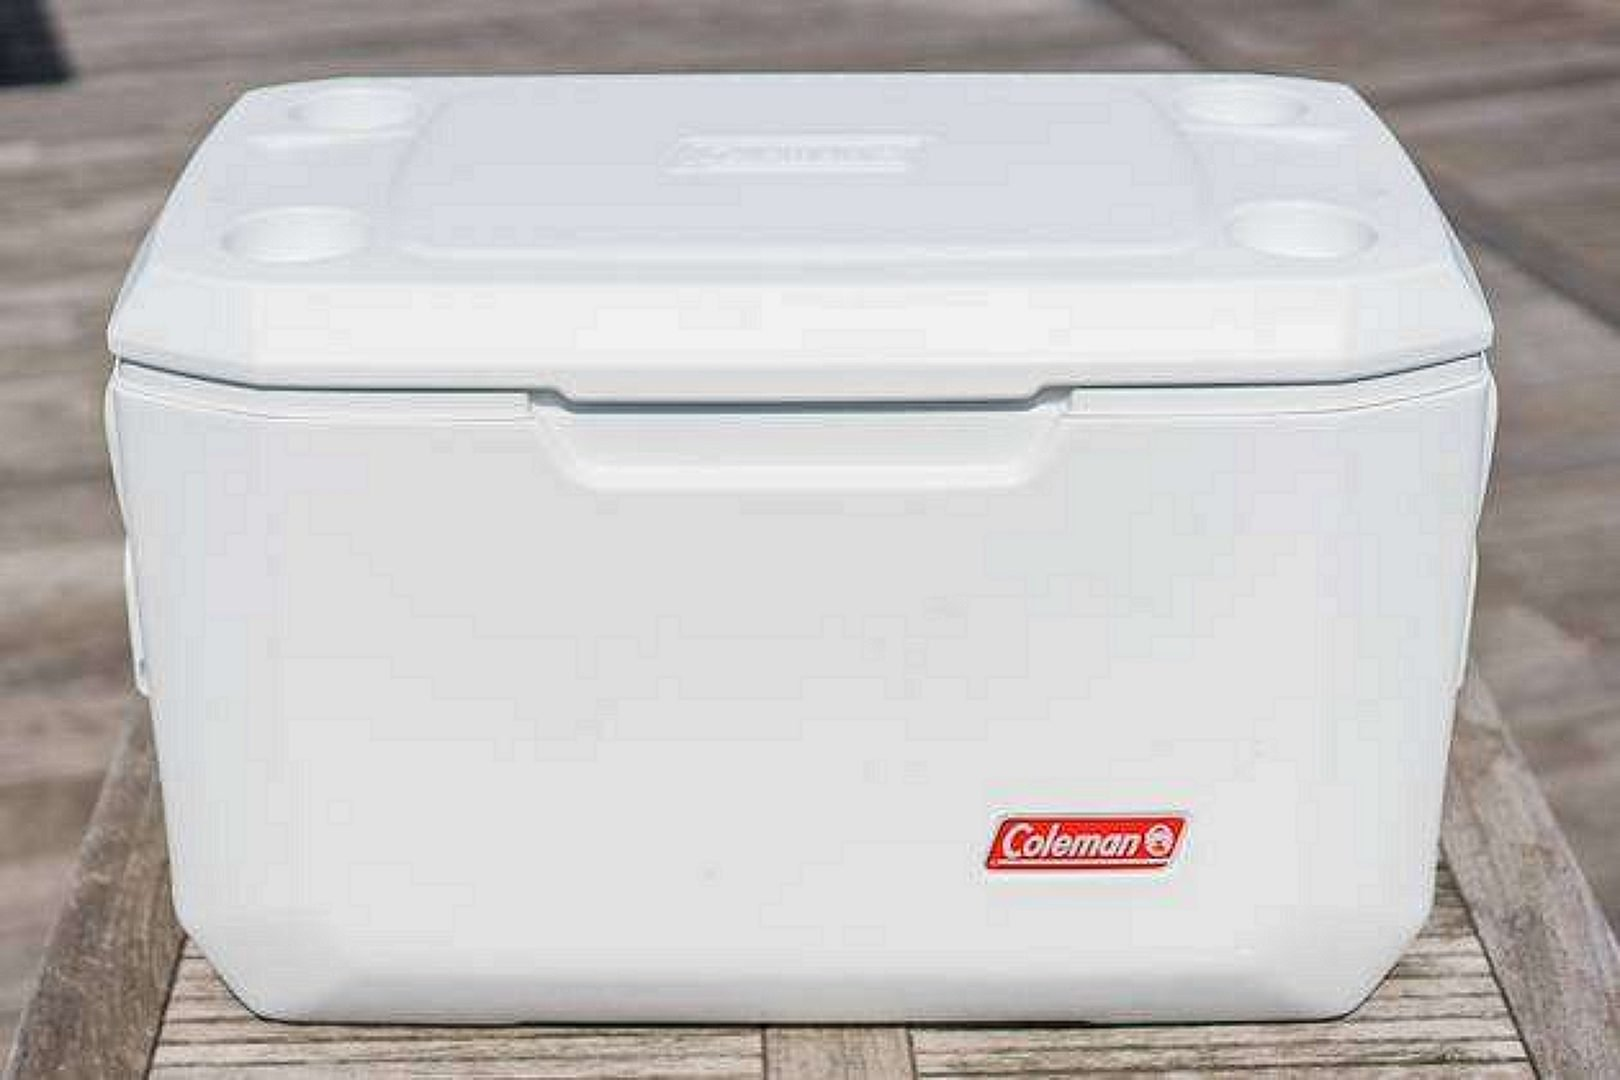 Coleman Camping Cooler, White